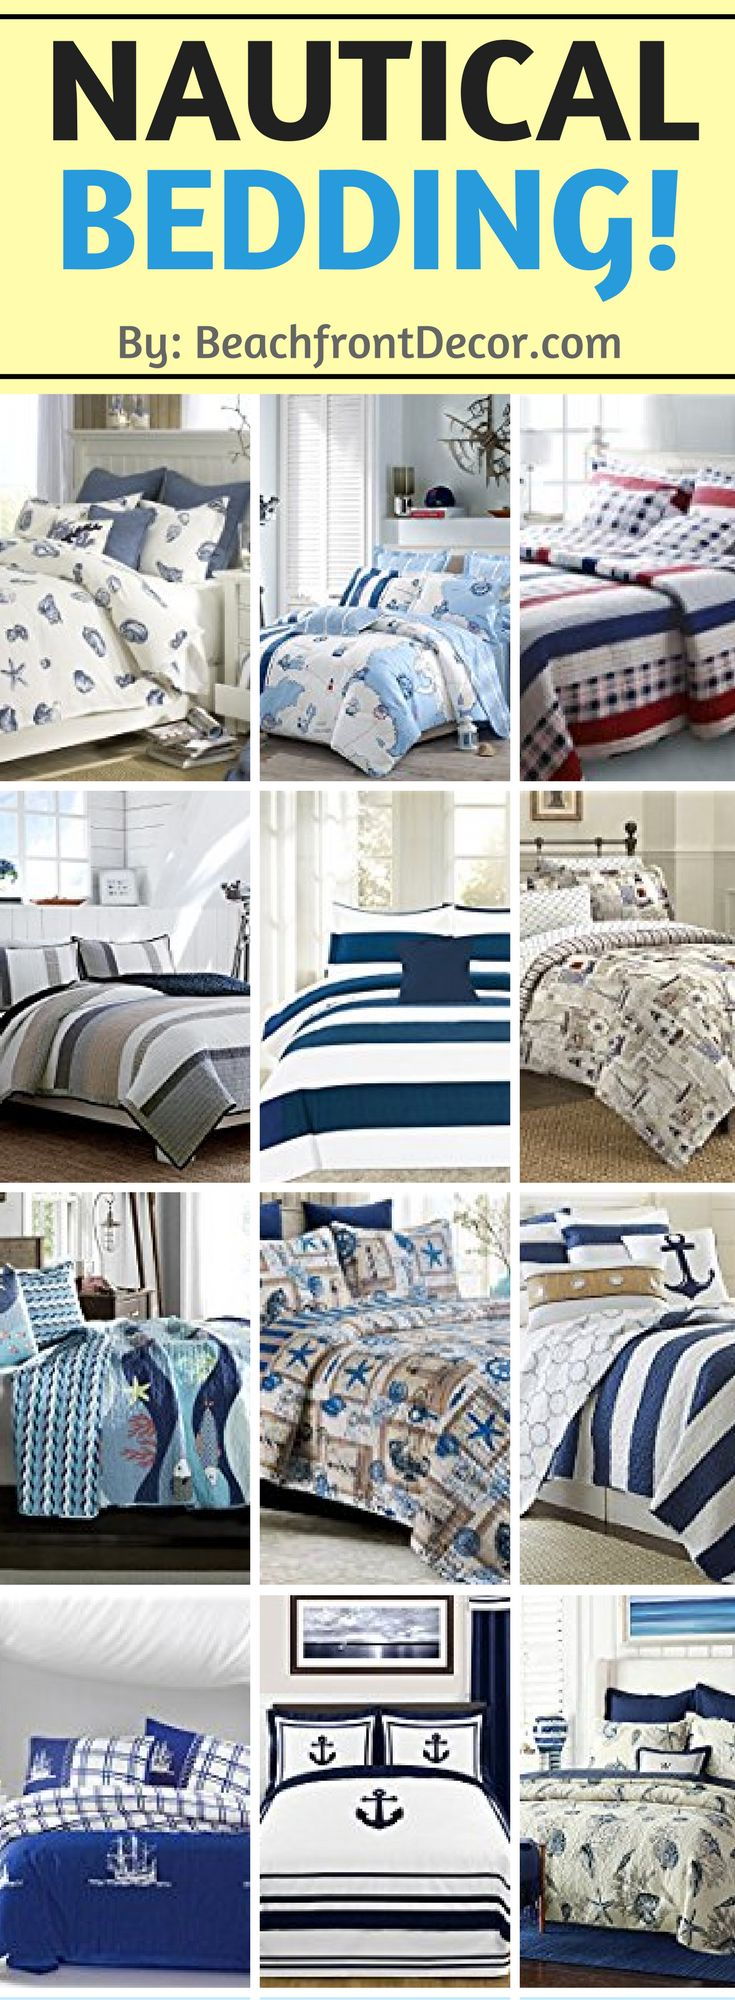 Nautical Themed Bedroom Furniture 17 Best Ideas About Nautical Bedding On Pinterest Nautical